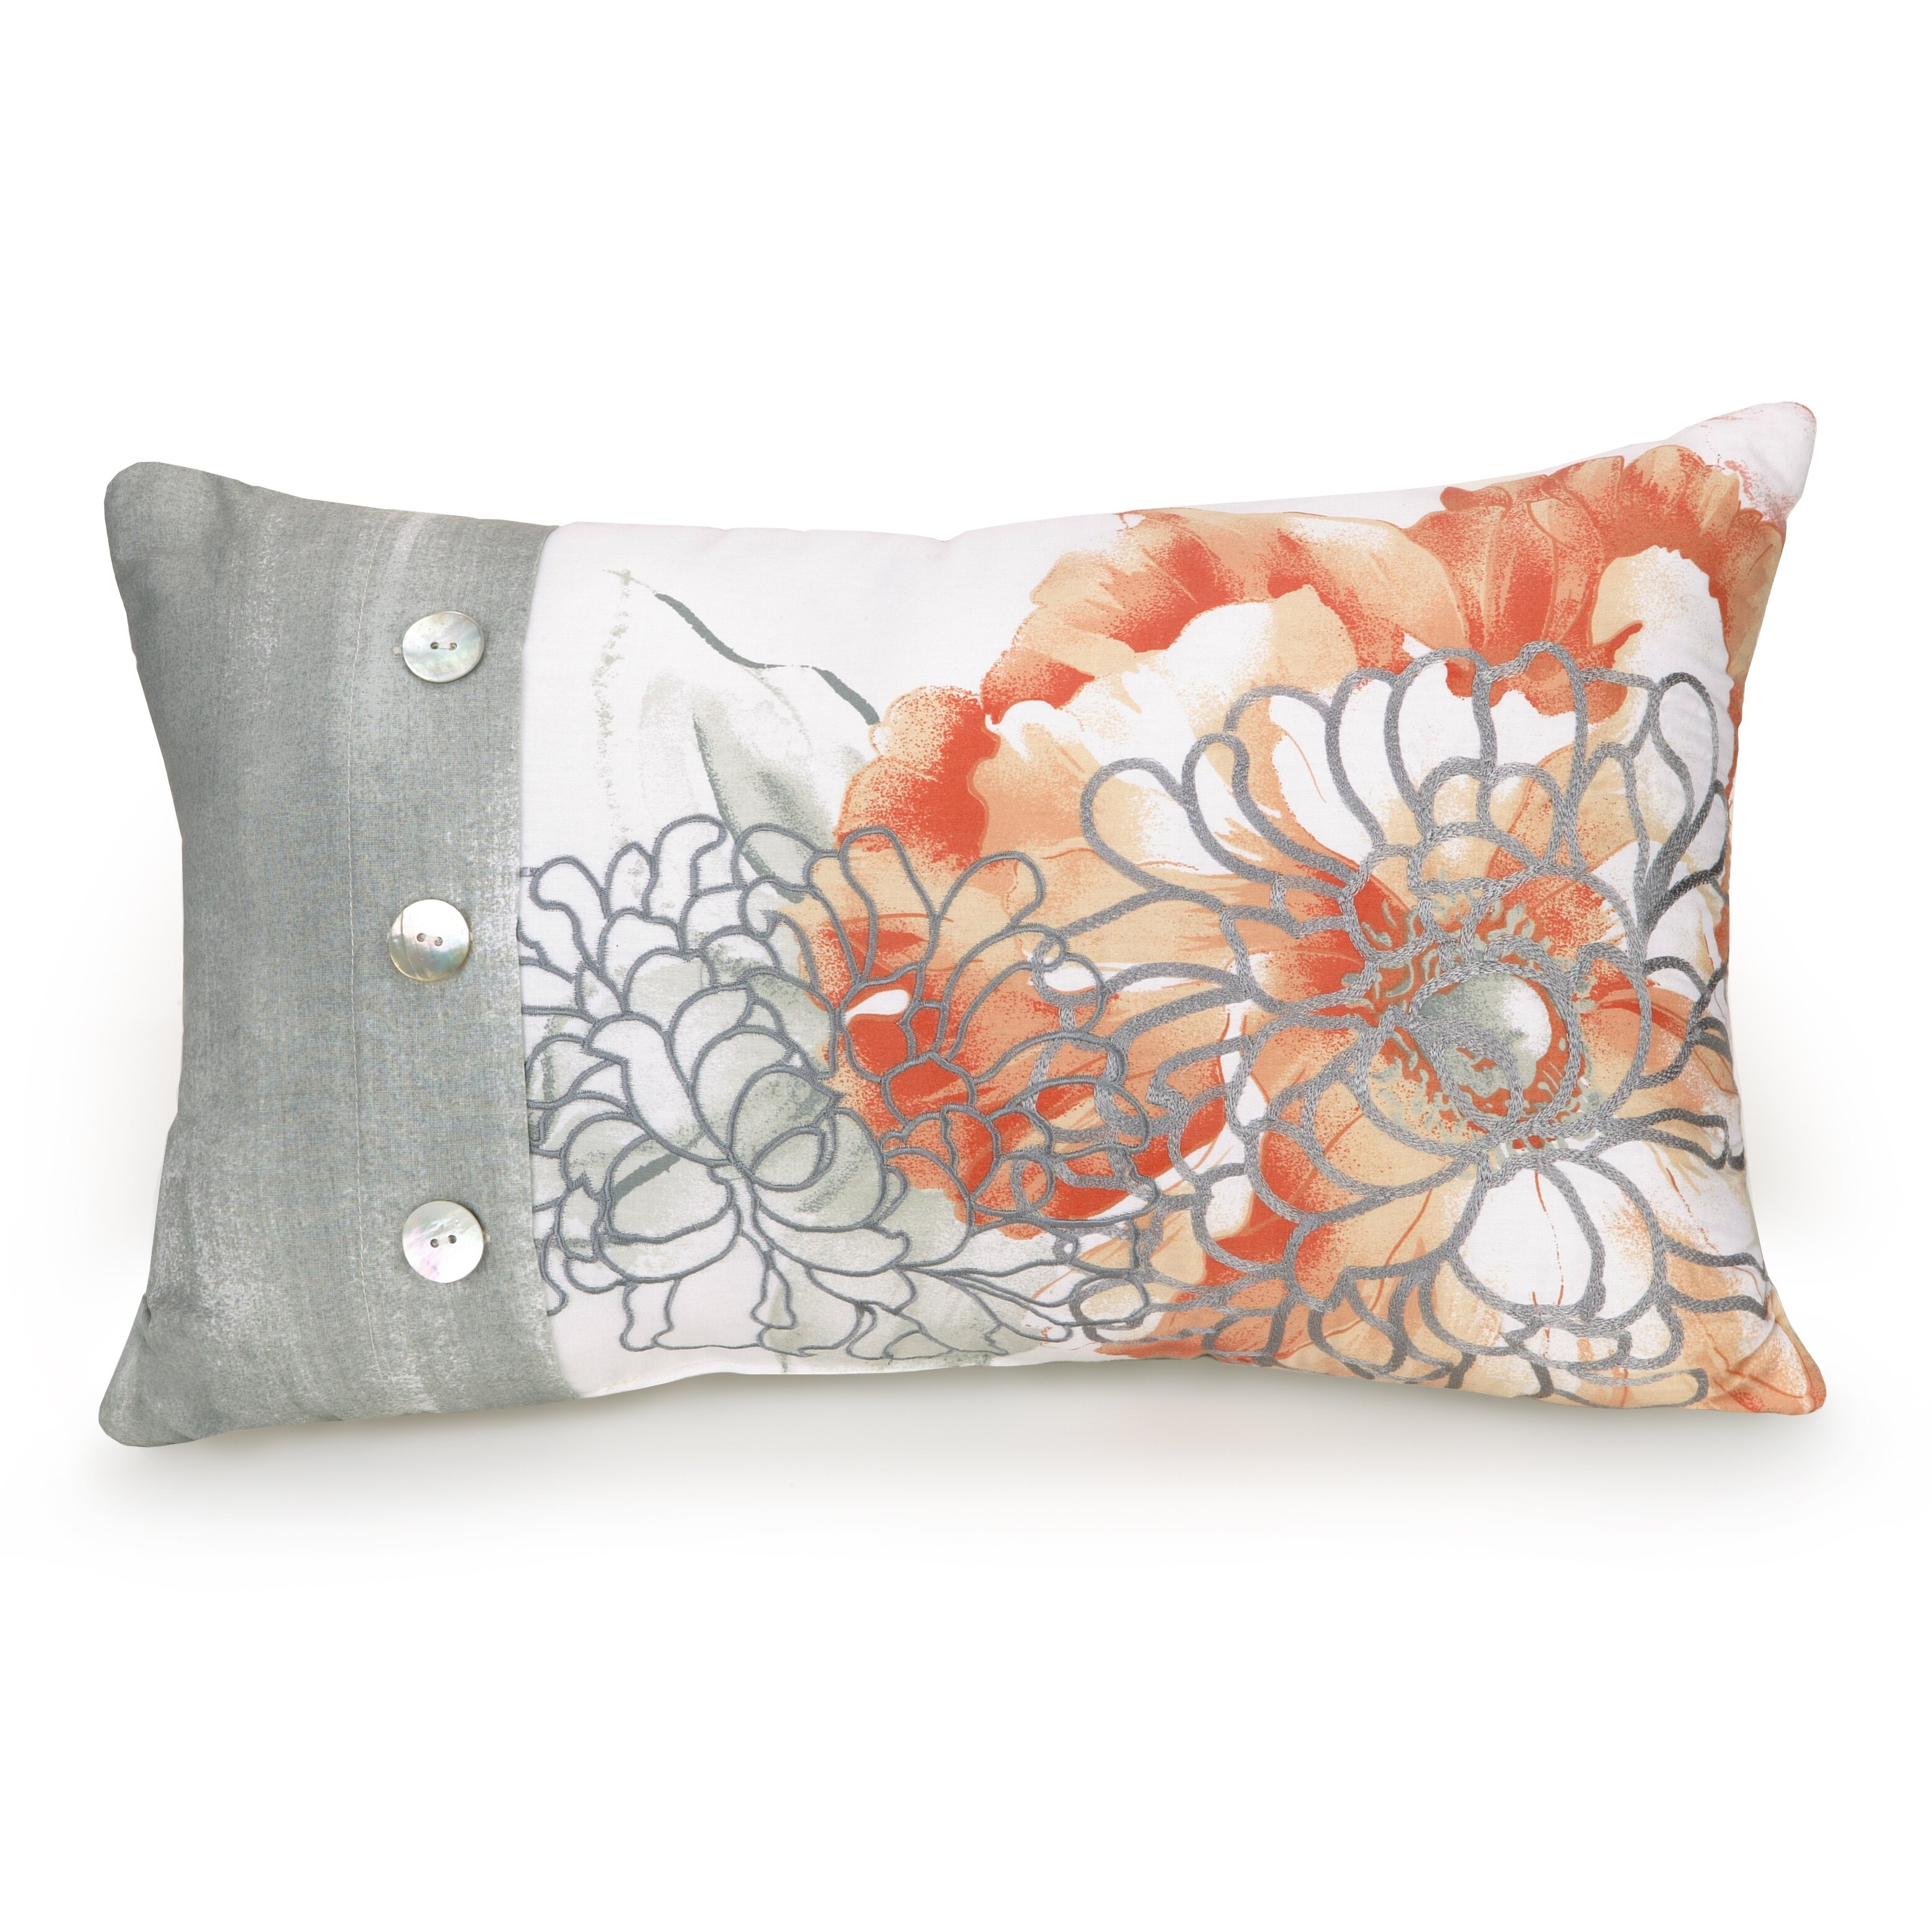 Jessica Simpson Home Golden Peony Floral Embroidered  : Jessica Simpson Home Golden Peony Floral Embroidered Decorative Pillow 80PHC83913C2420 from www.wayfair.com size 3108 x 3108 jpeg 895kB